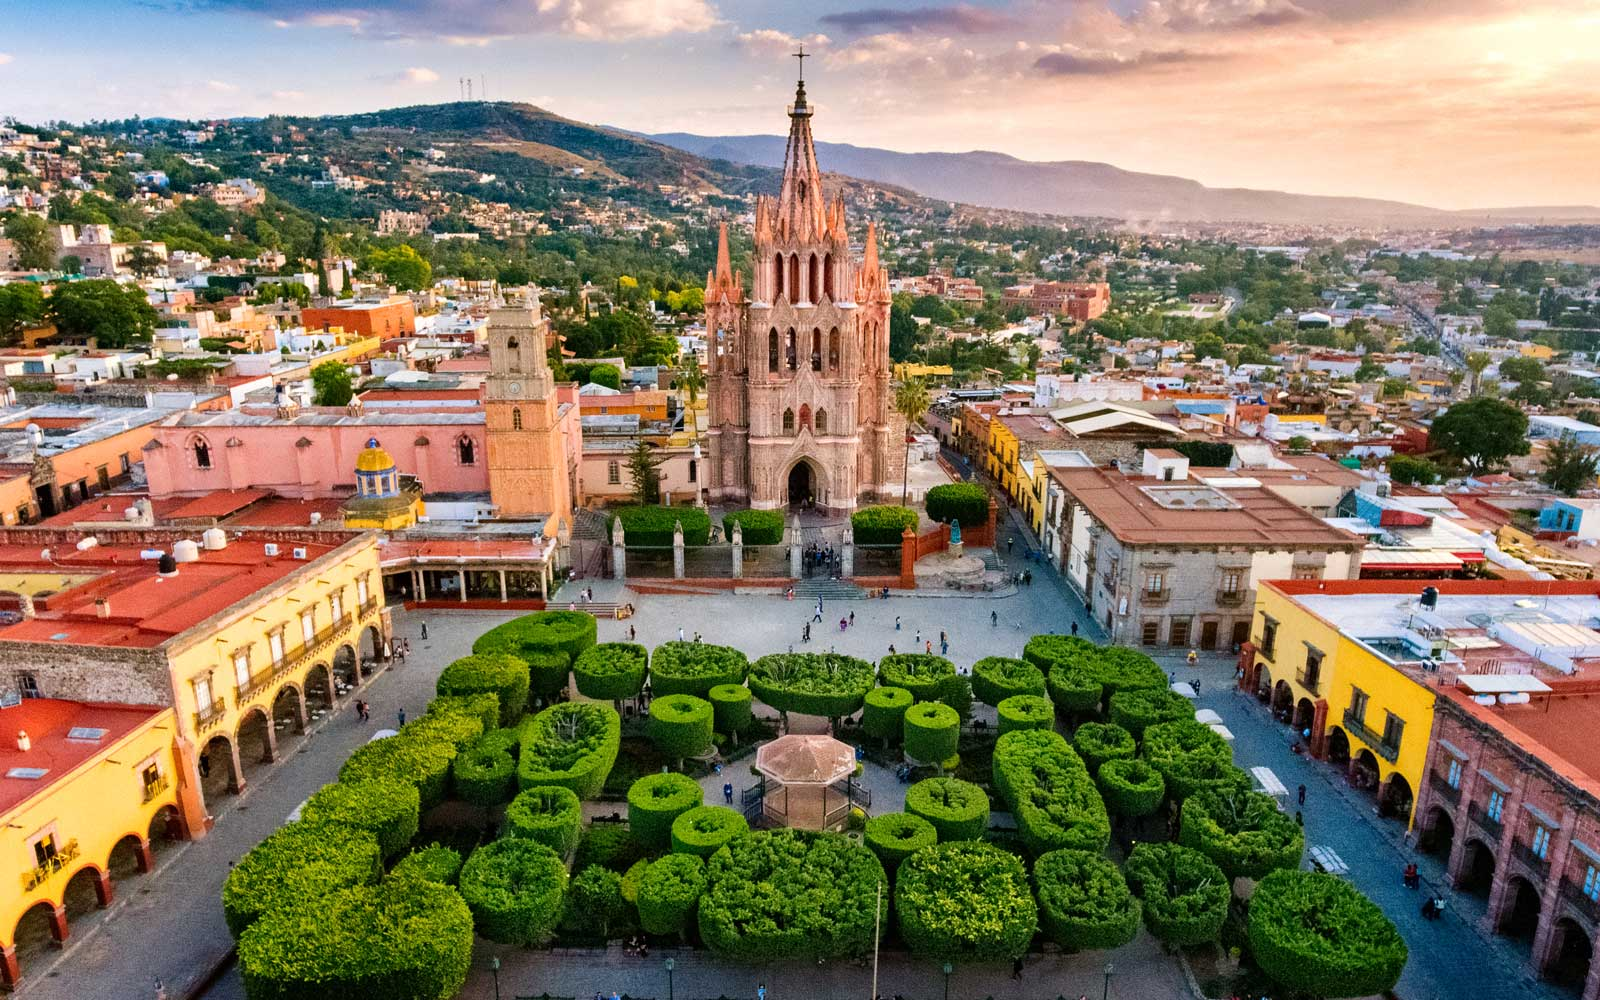 Overview of San Miguel de Allende, Mexico